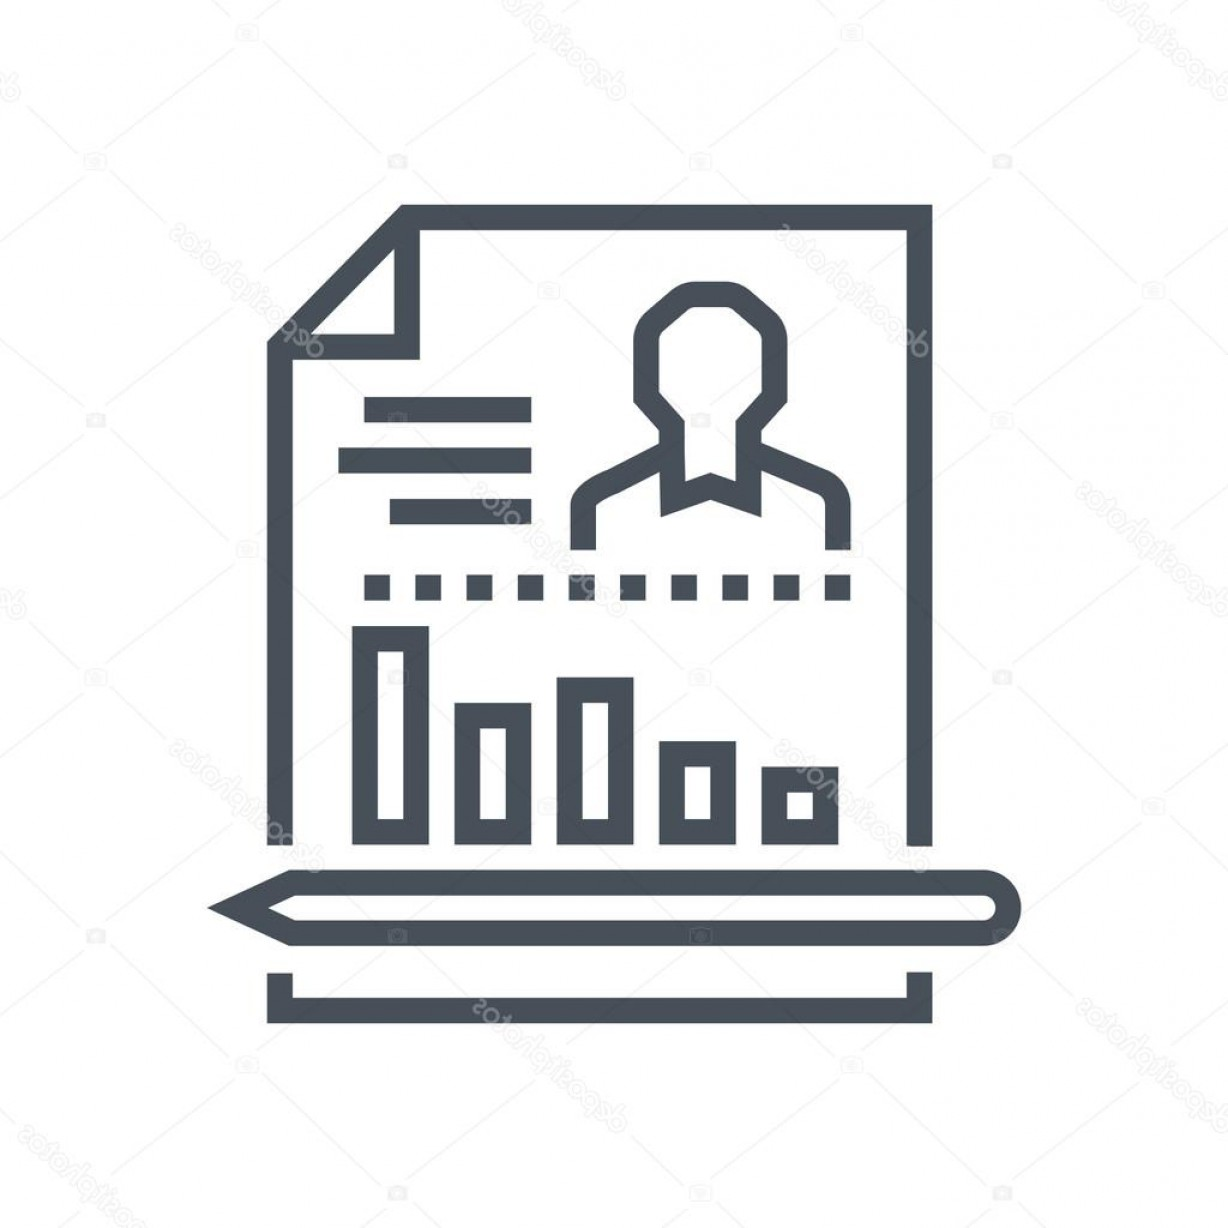 Report Icon Vector: Stock Illustration Employee Performance Report Icon